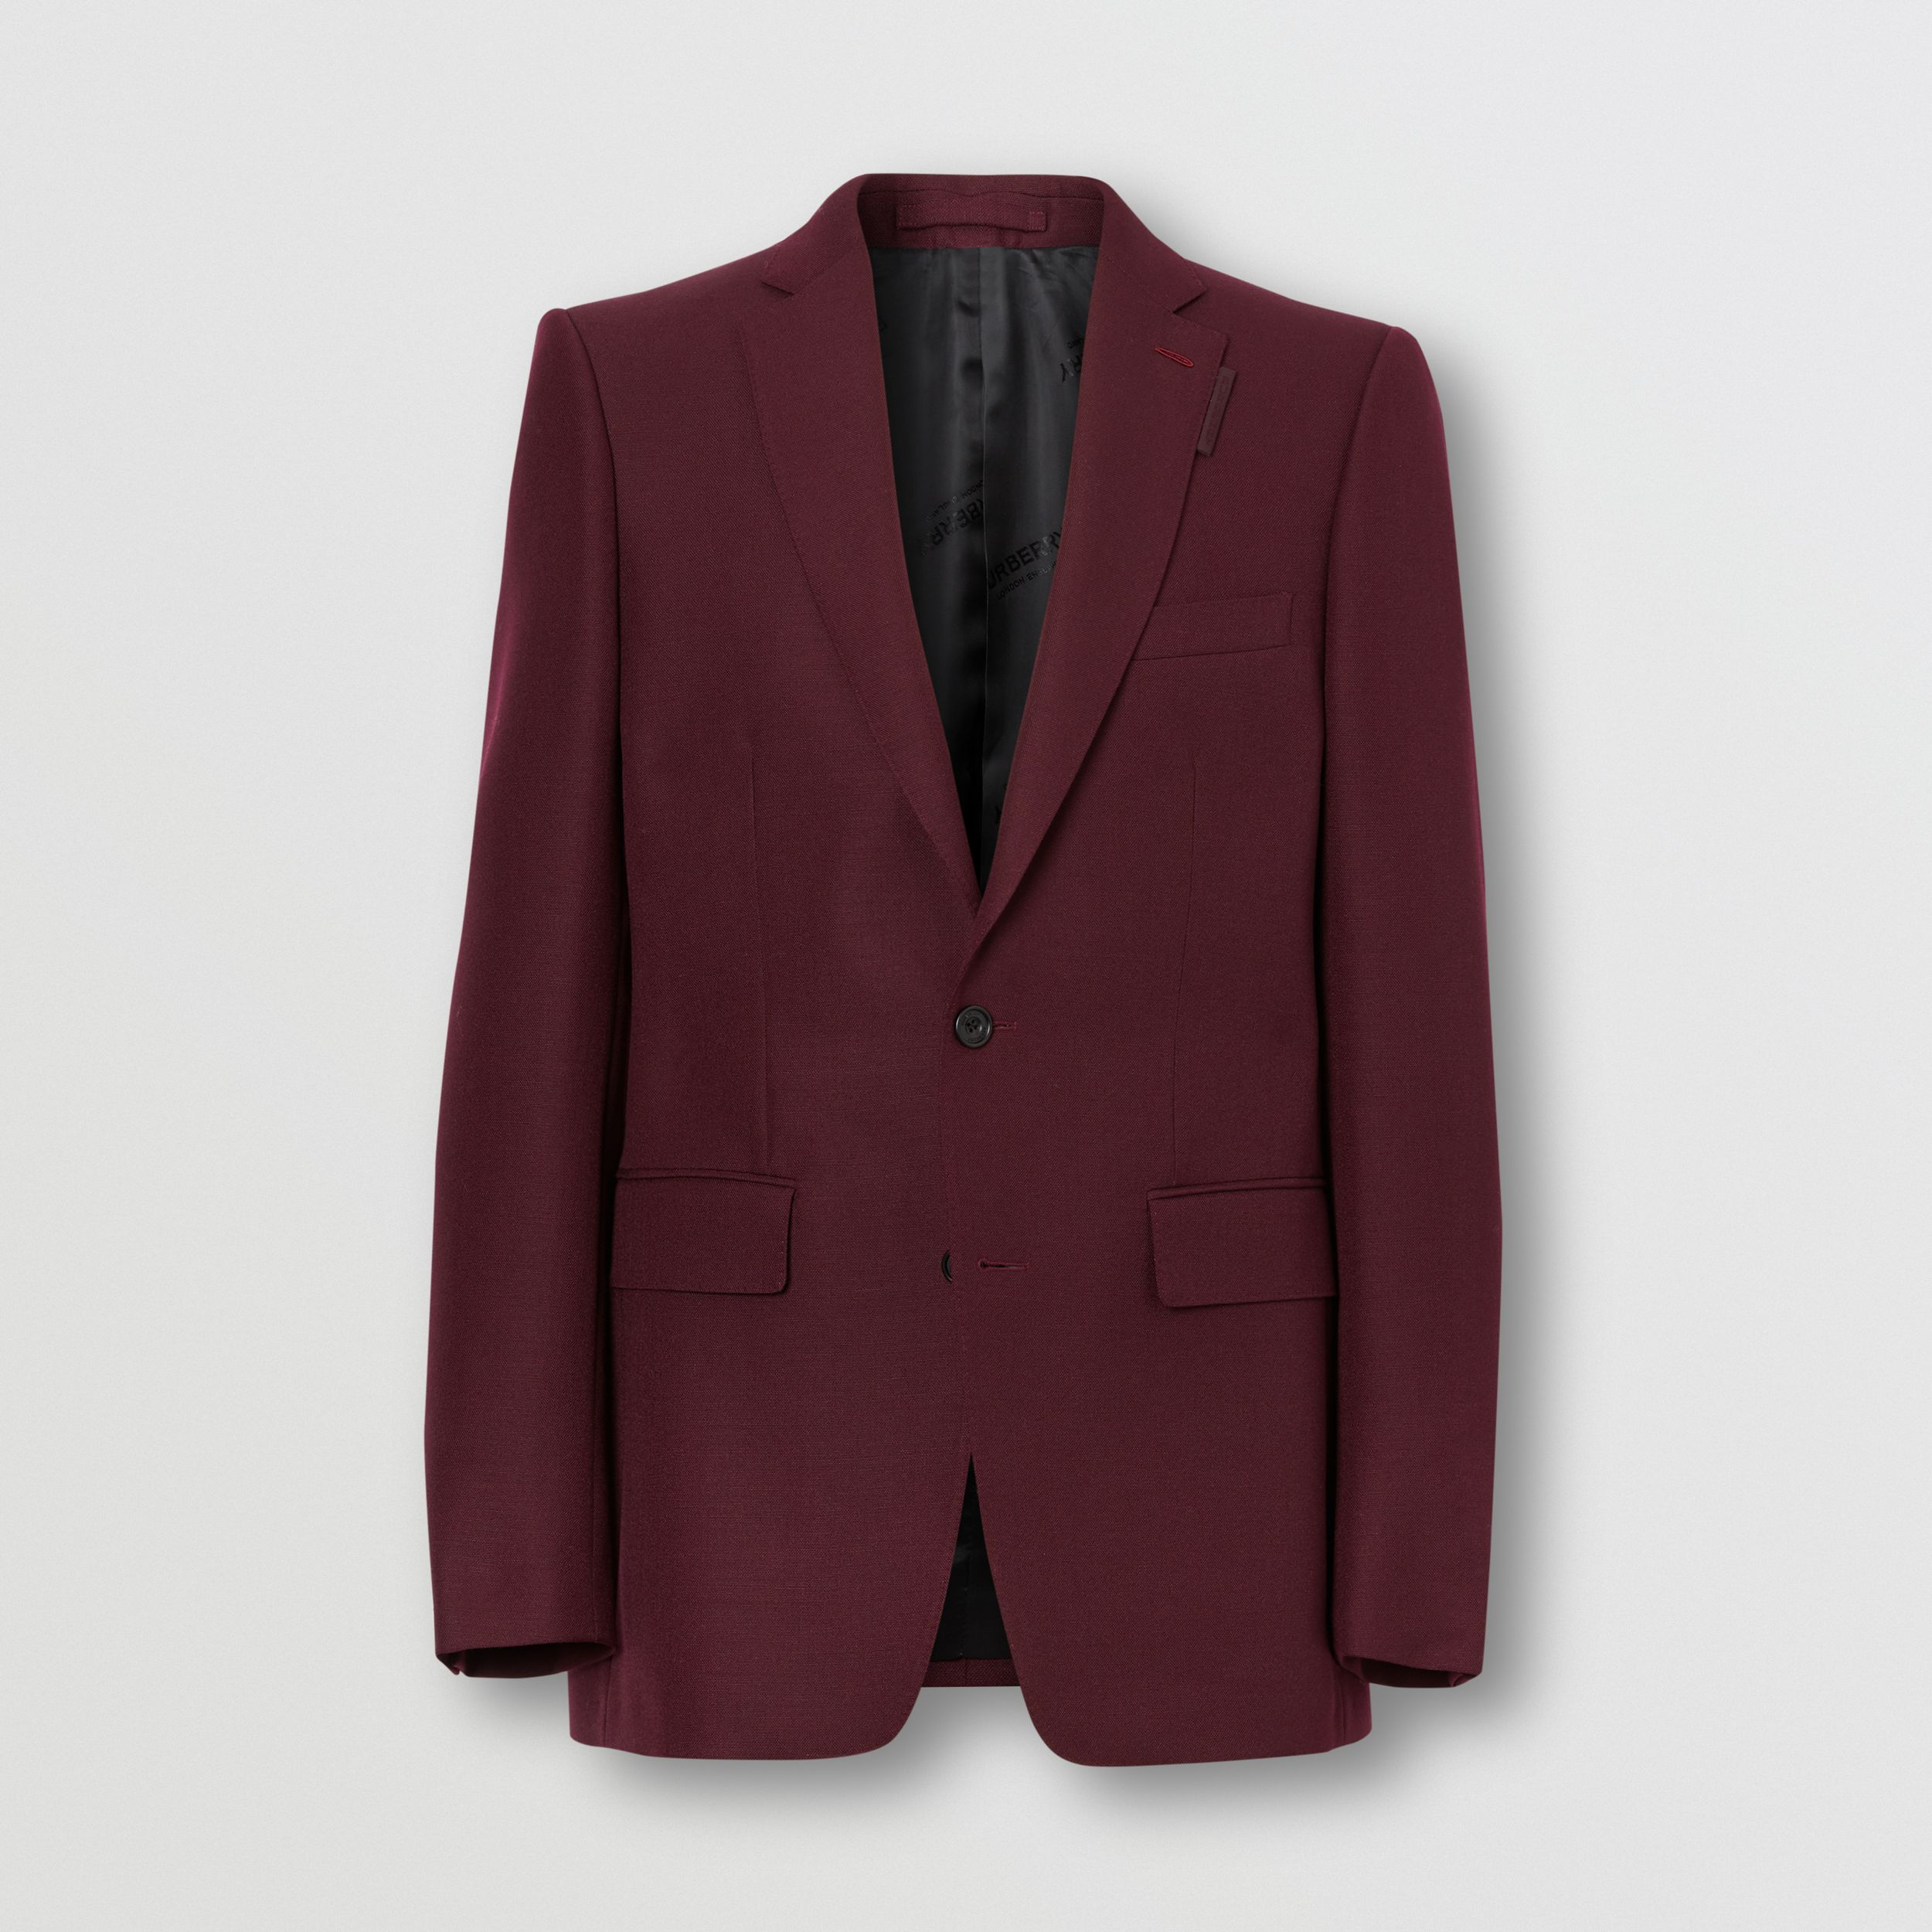 English Fit Wool Mohair Tailored Jacket in Deep Burgundy - Men | Burberry - 4